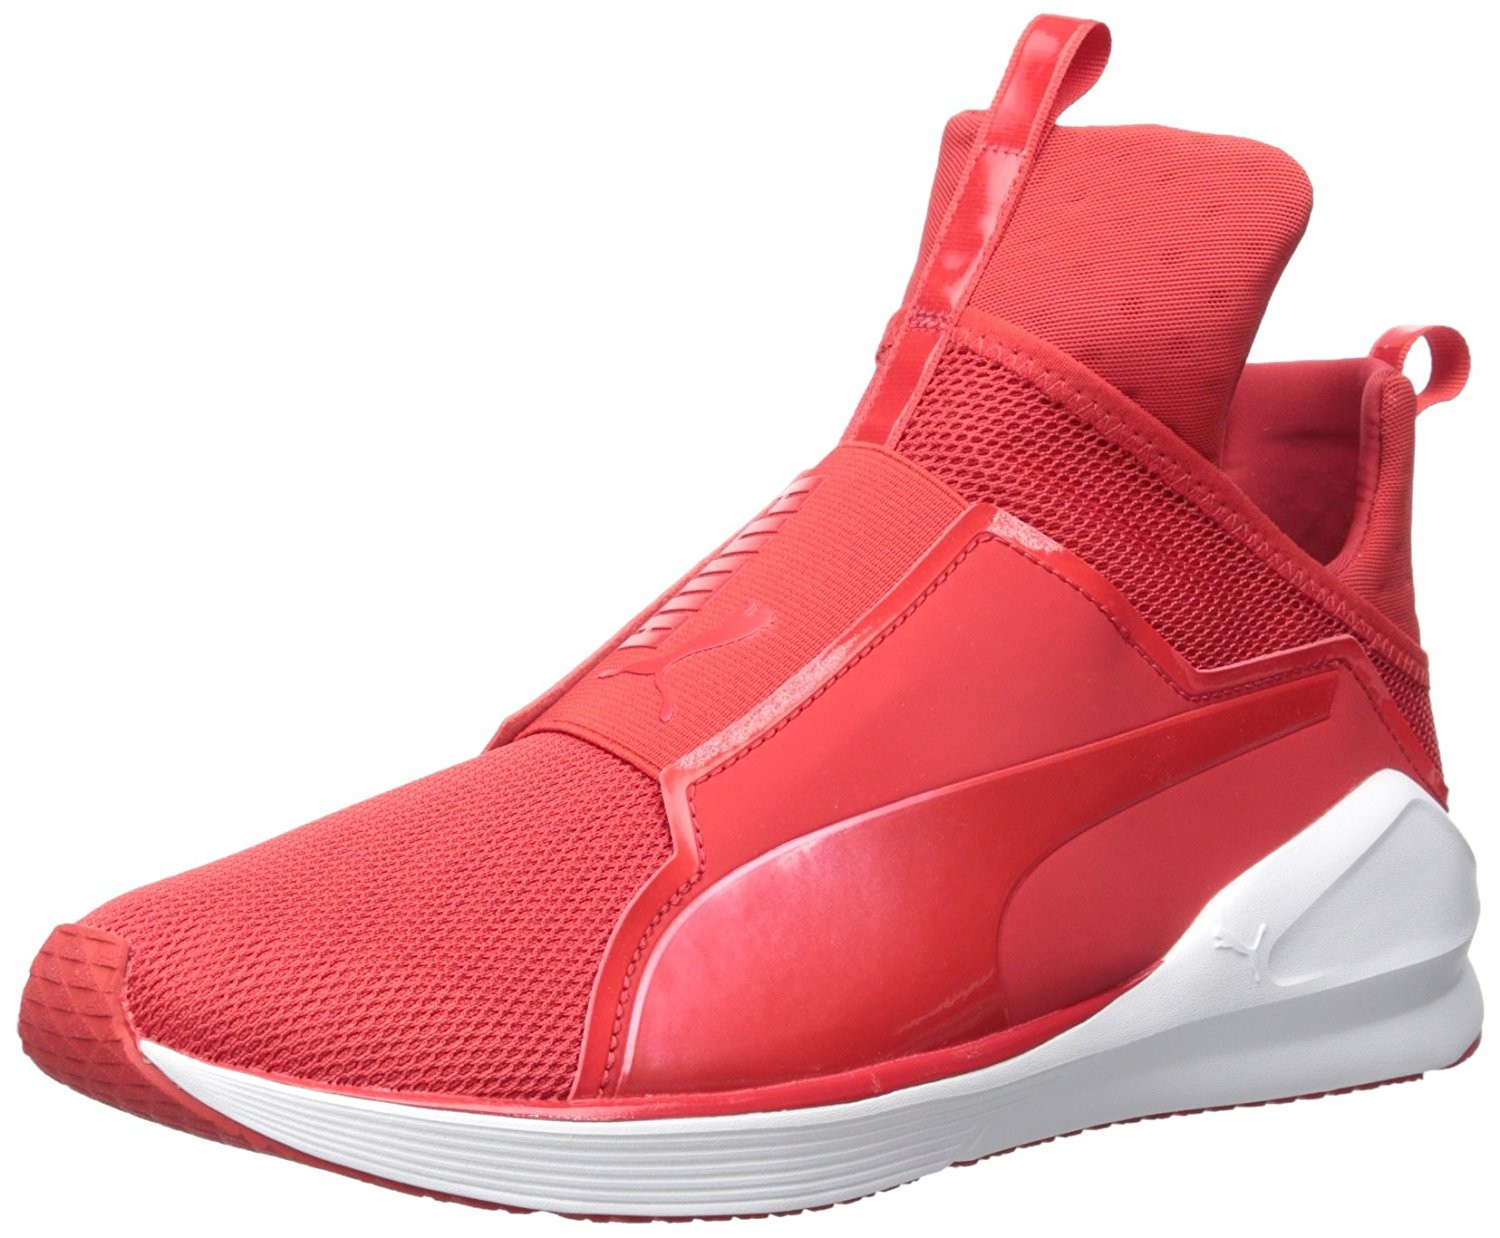 Puma Fierce Core Red